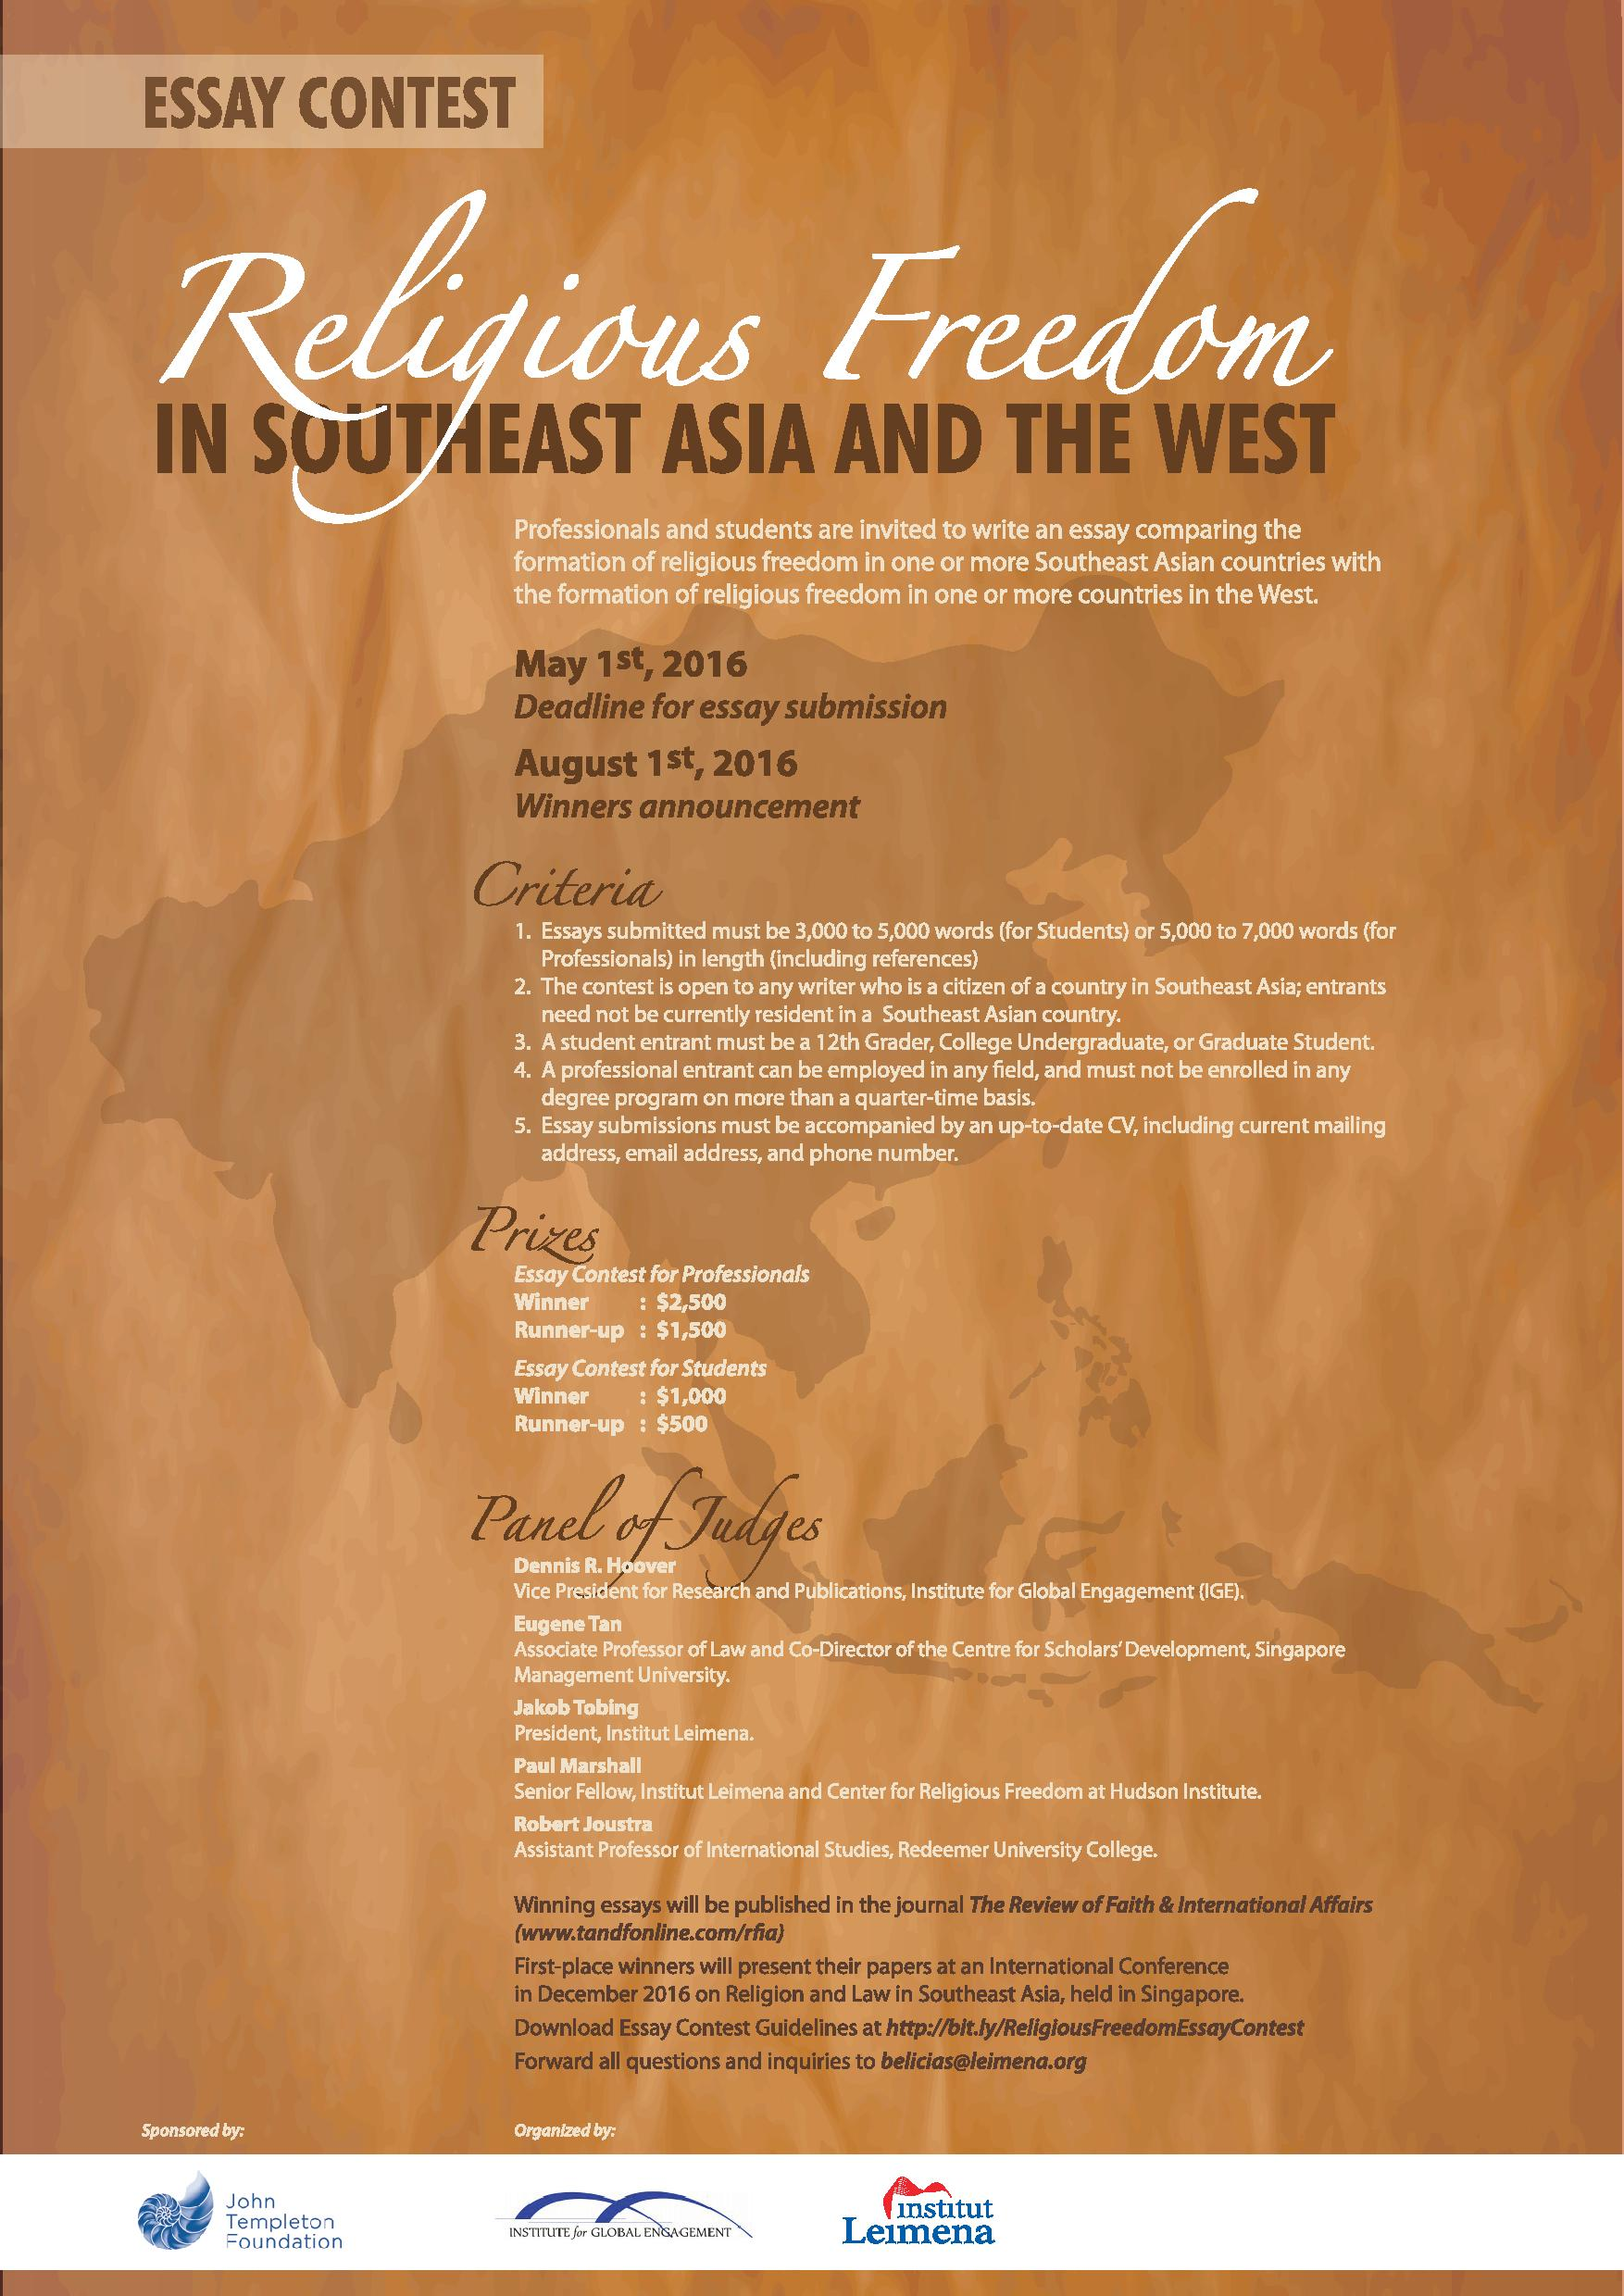 Institute for Global Engagement's Essay Contest on Religious Freedom in Southeast Asia and the West